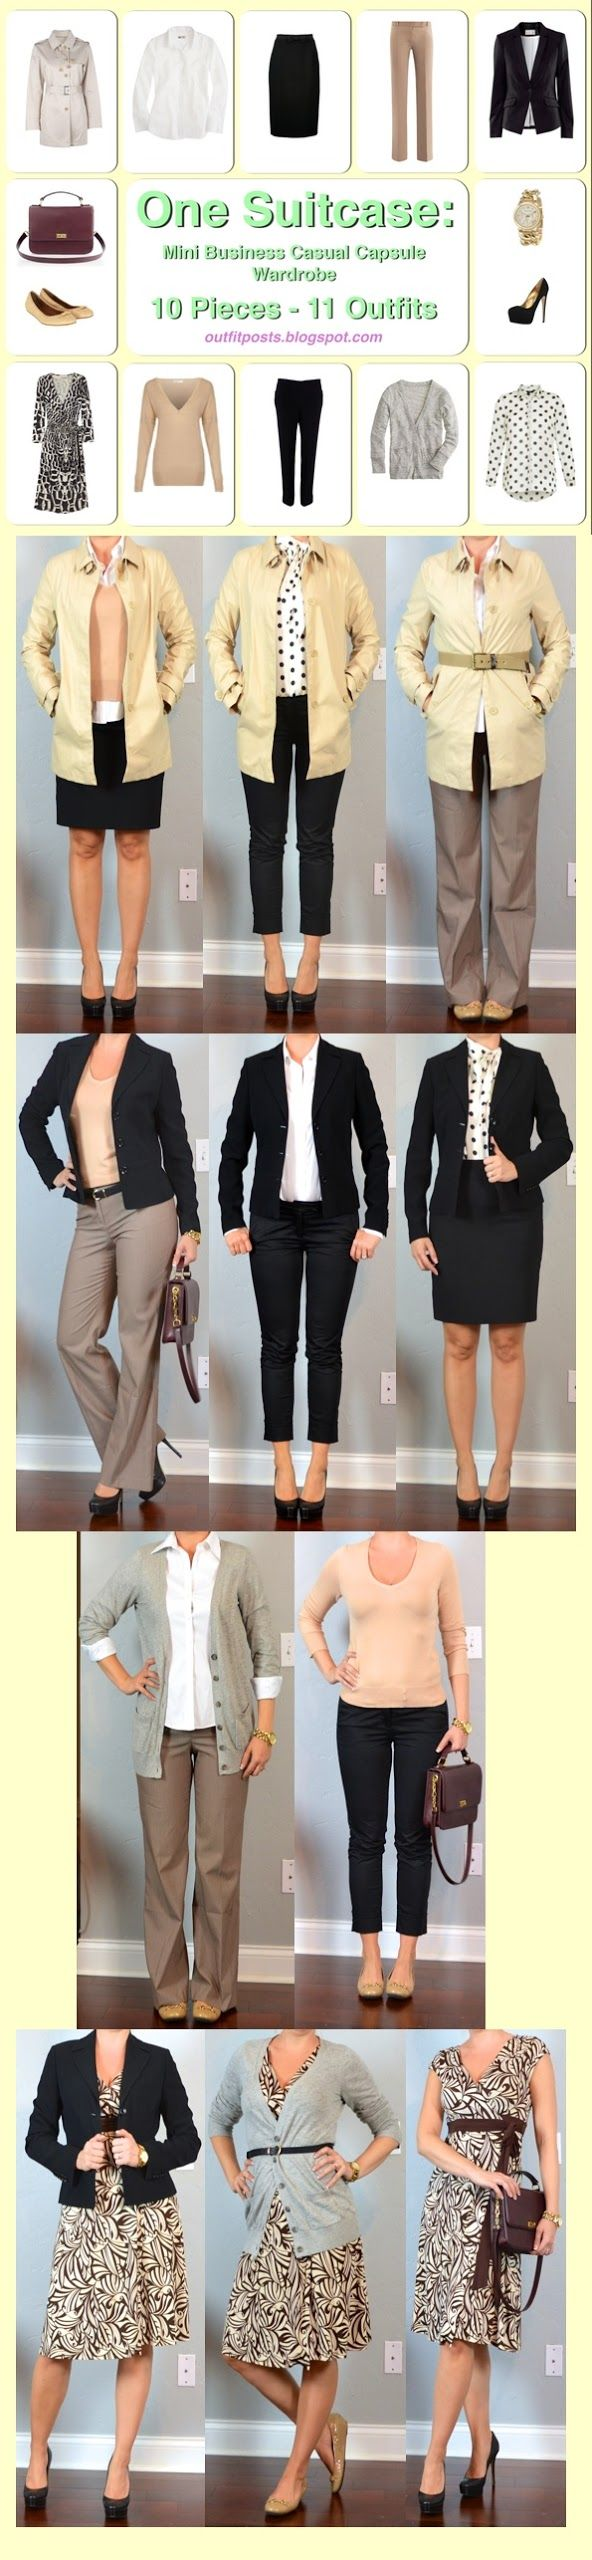 Outfit Posts: one suitcase: mini business casual capsule wardrobe - now I just have to find these things that are probably already in my closet!